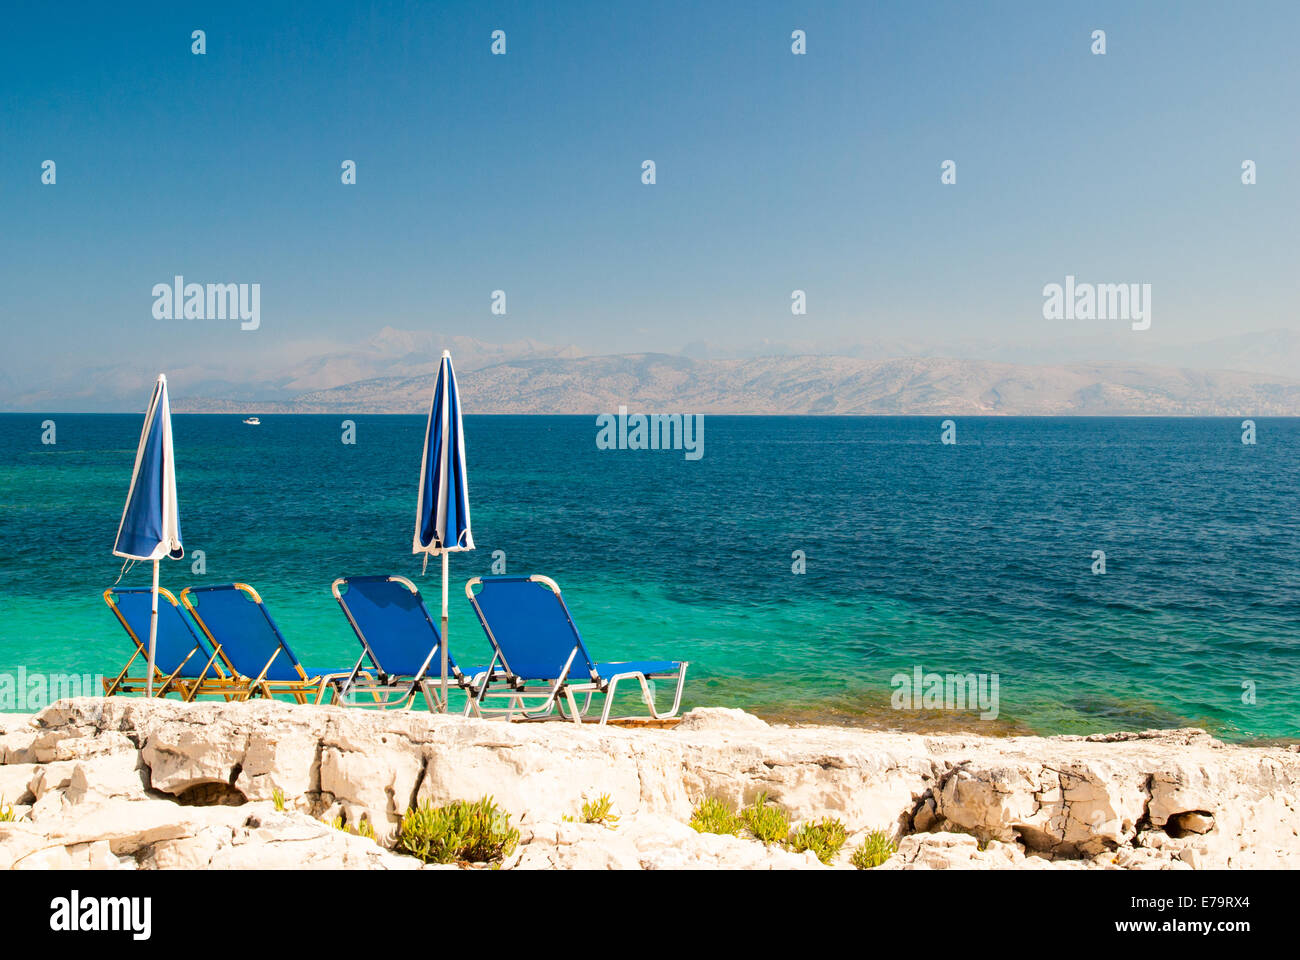 Sunbeds and umbrellas (parasols) on a rocky beach in Corfu Island, Ionian Sea, Greece Stock Photo